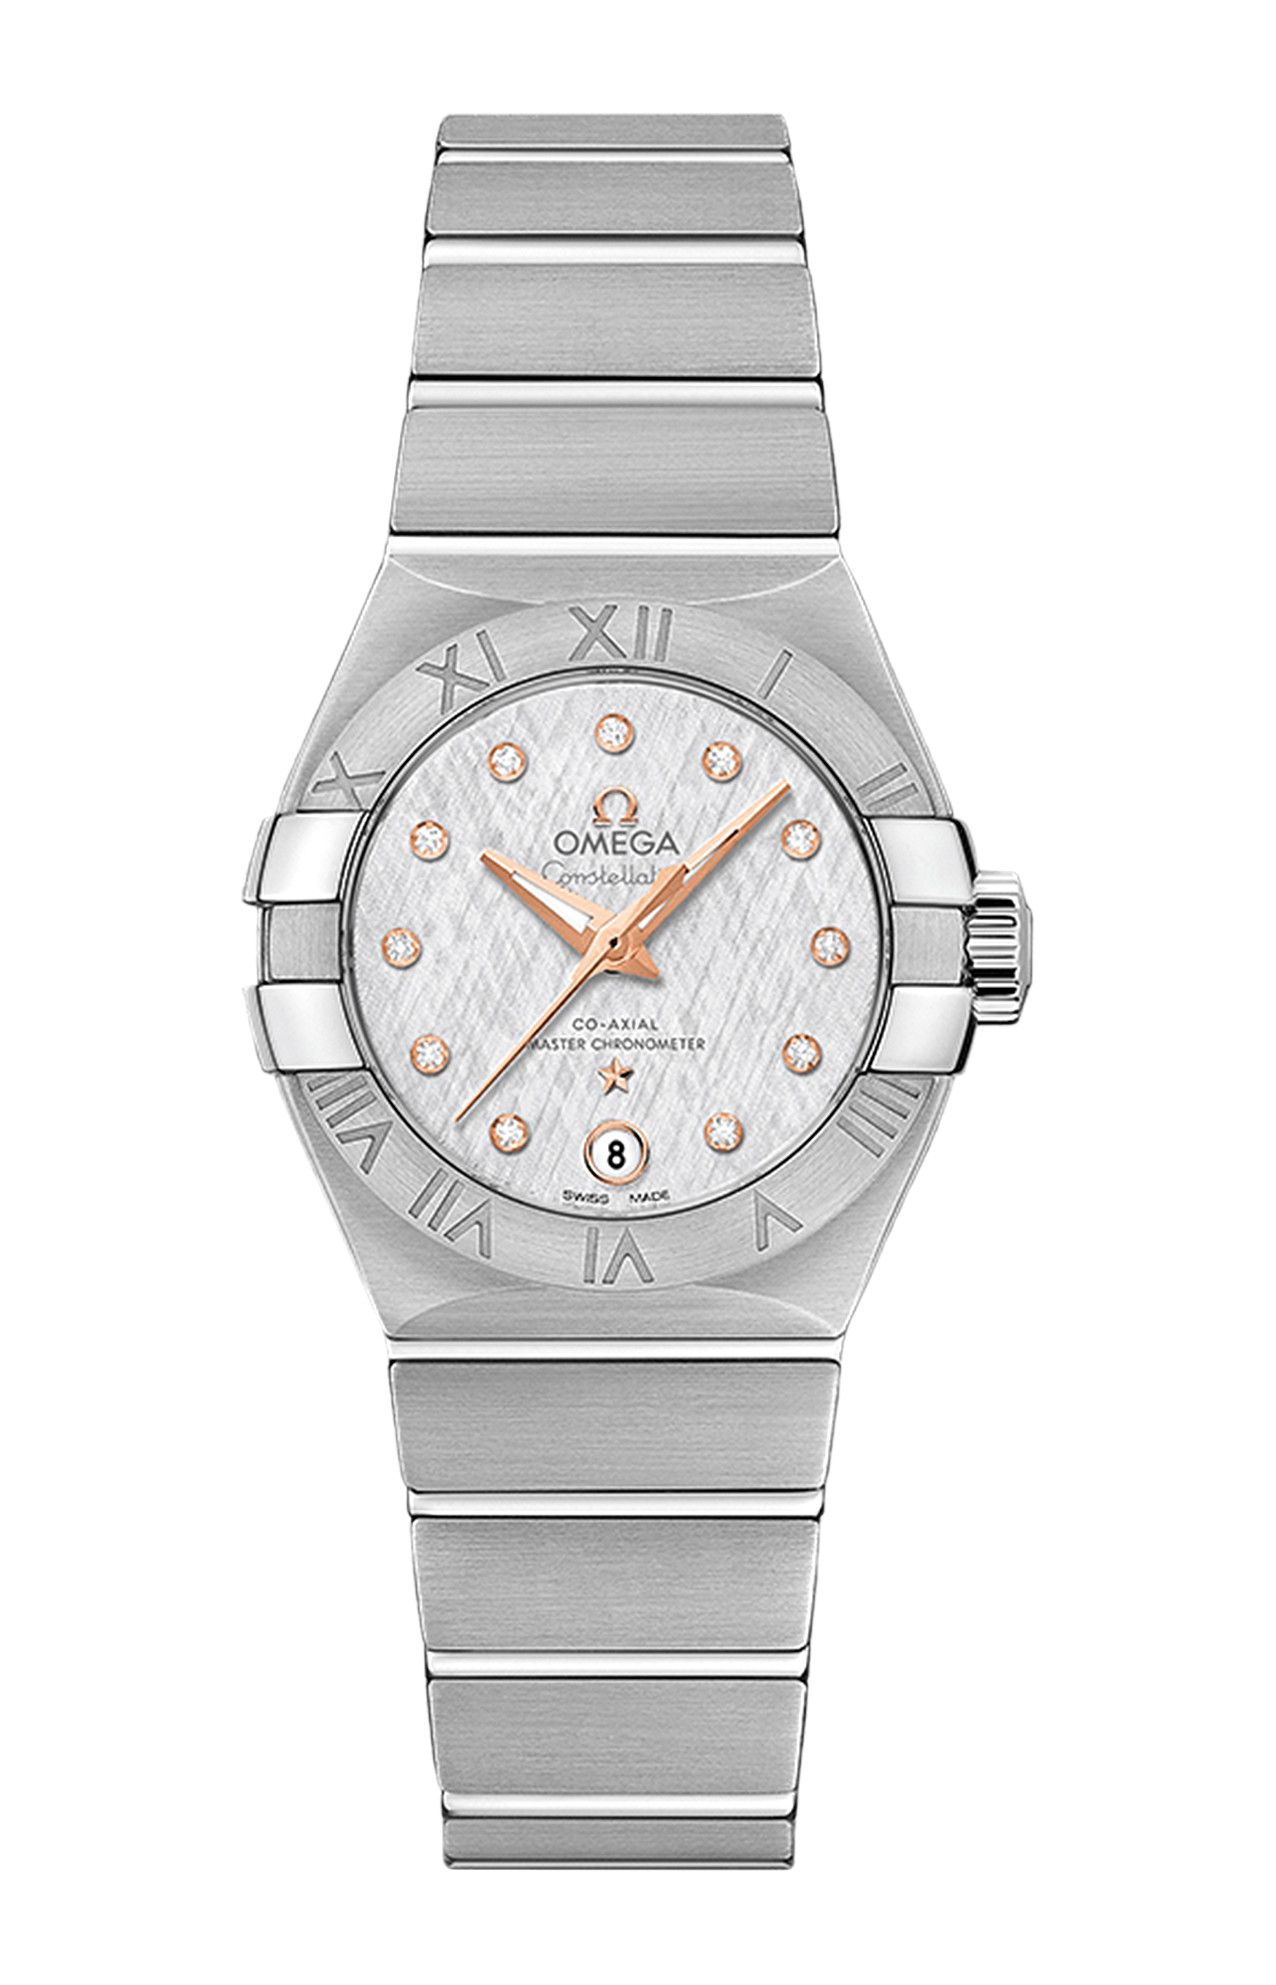 CONSTELLATION OMEGA CO-AXIAL MASTER CHRONOMETER 27 MM - 127.10.27.20.52.001